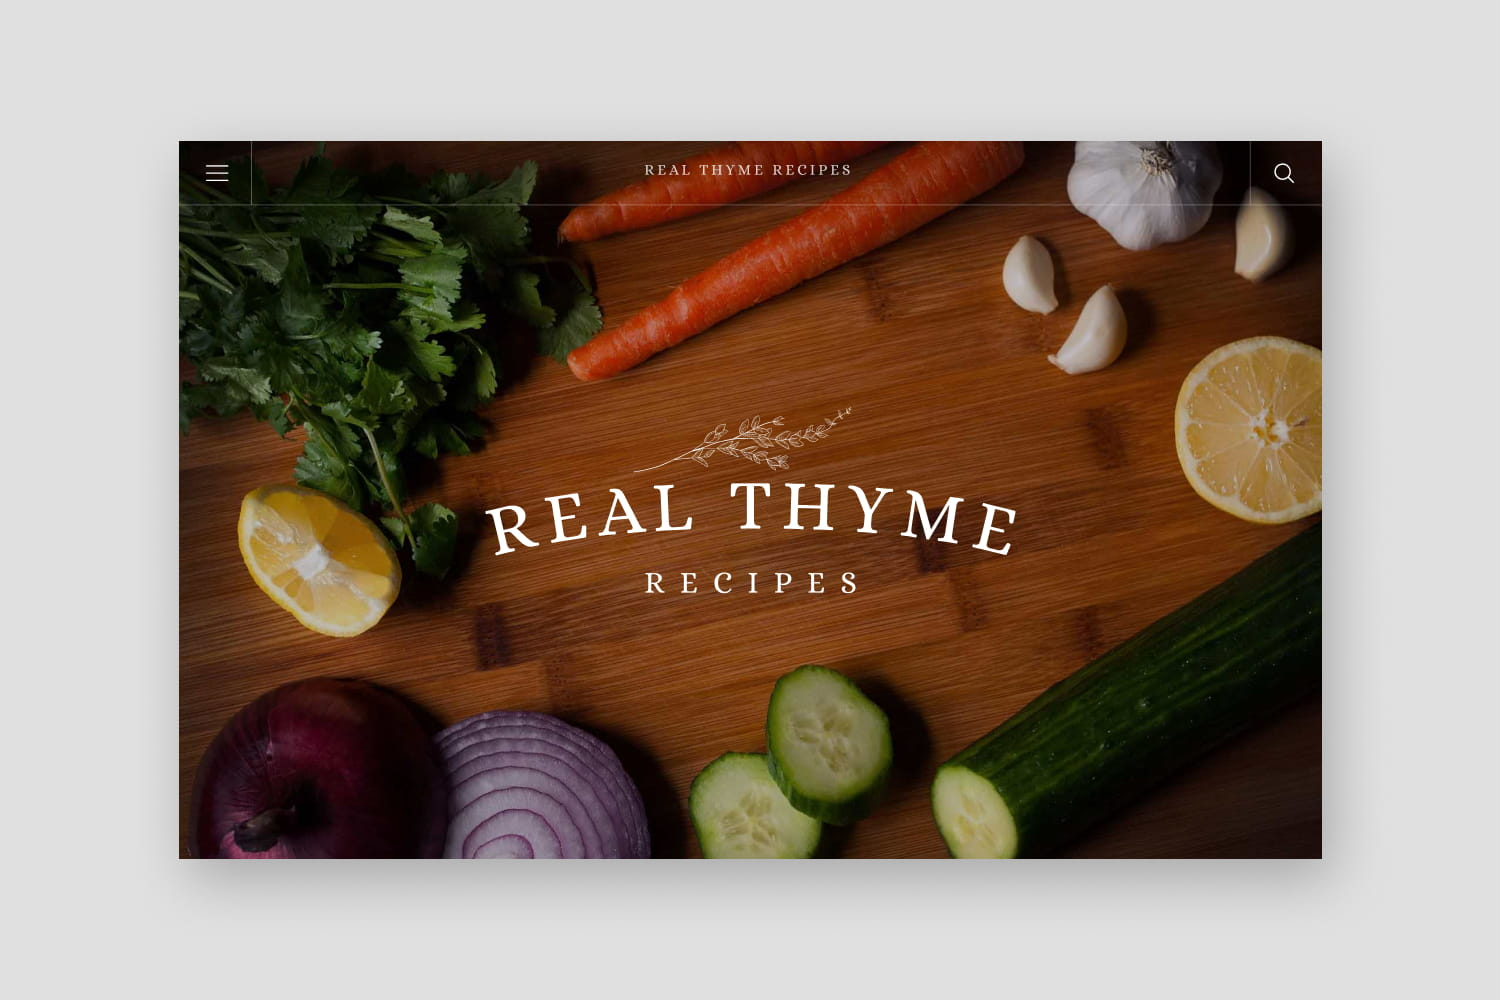 Real Thyme Recipes